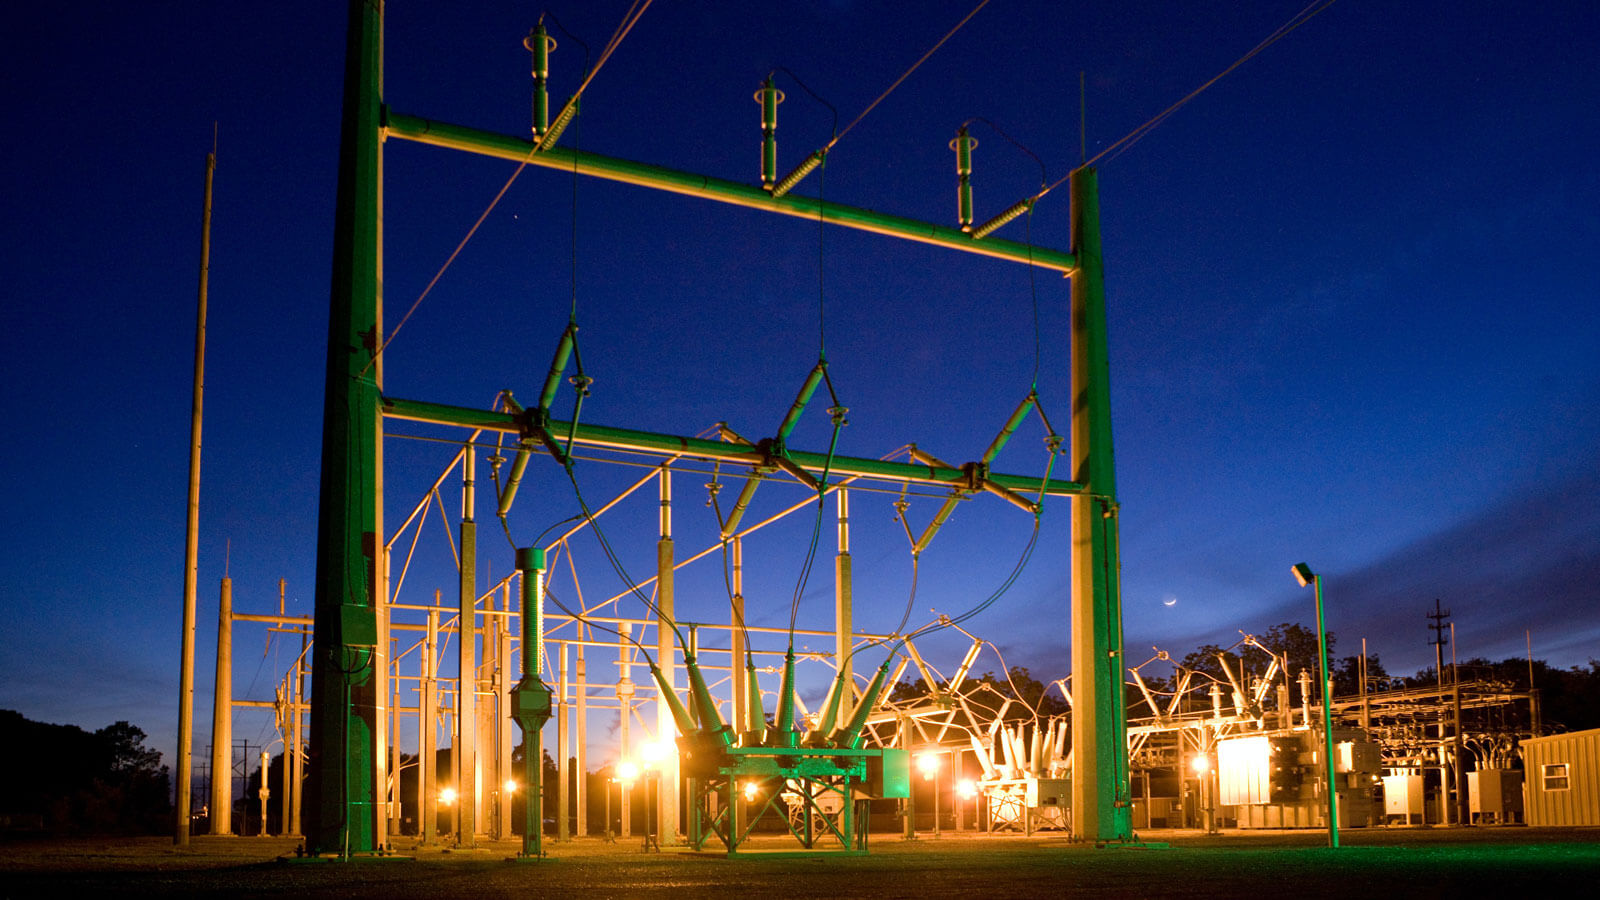 Power stations were needed for electric lighting